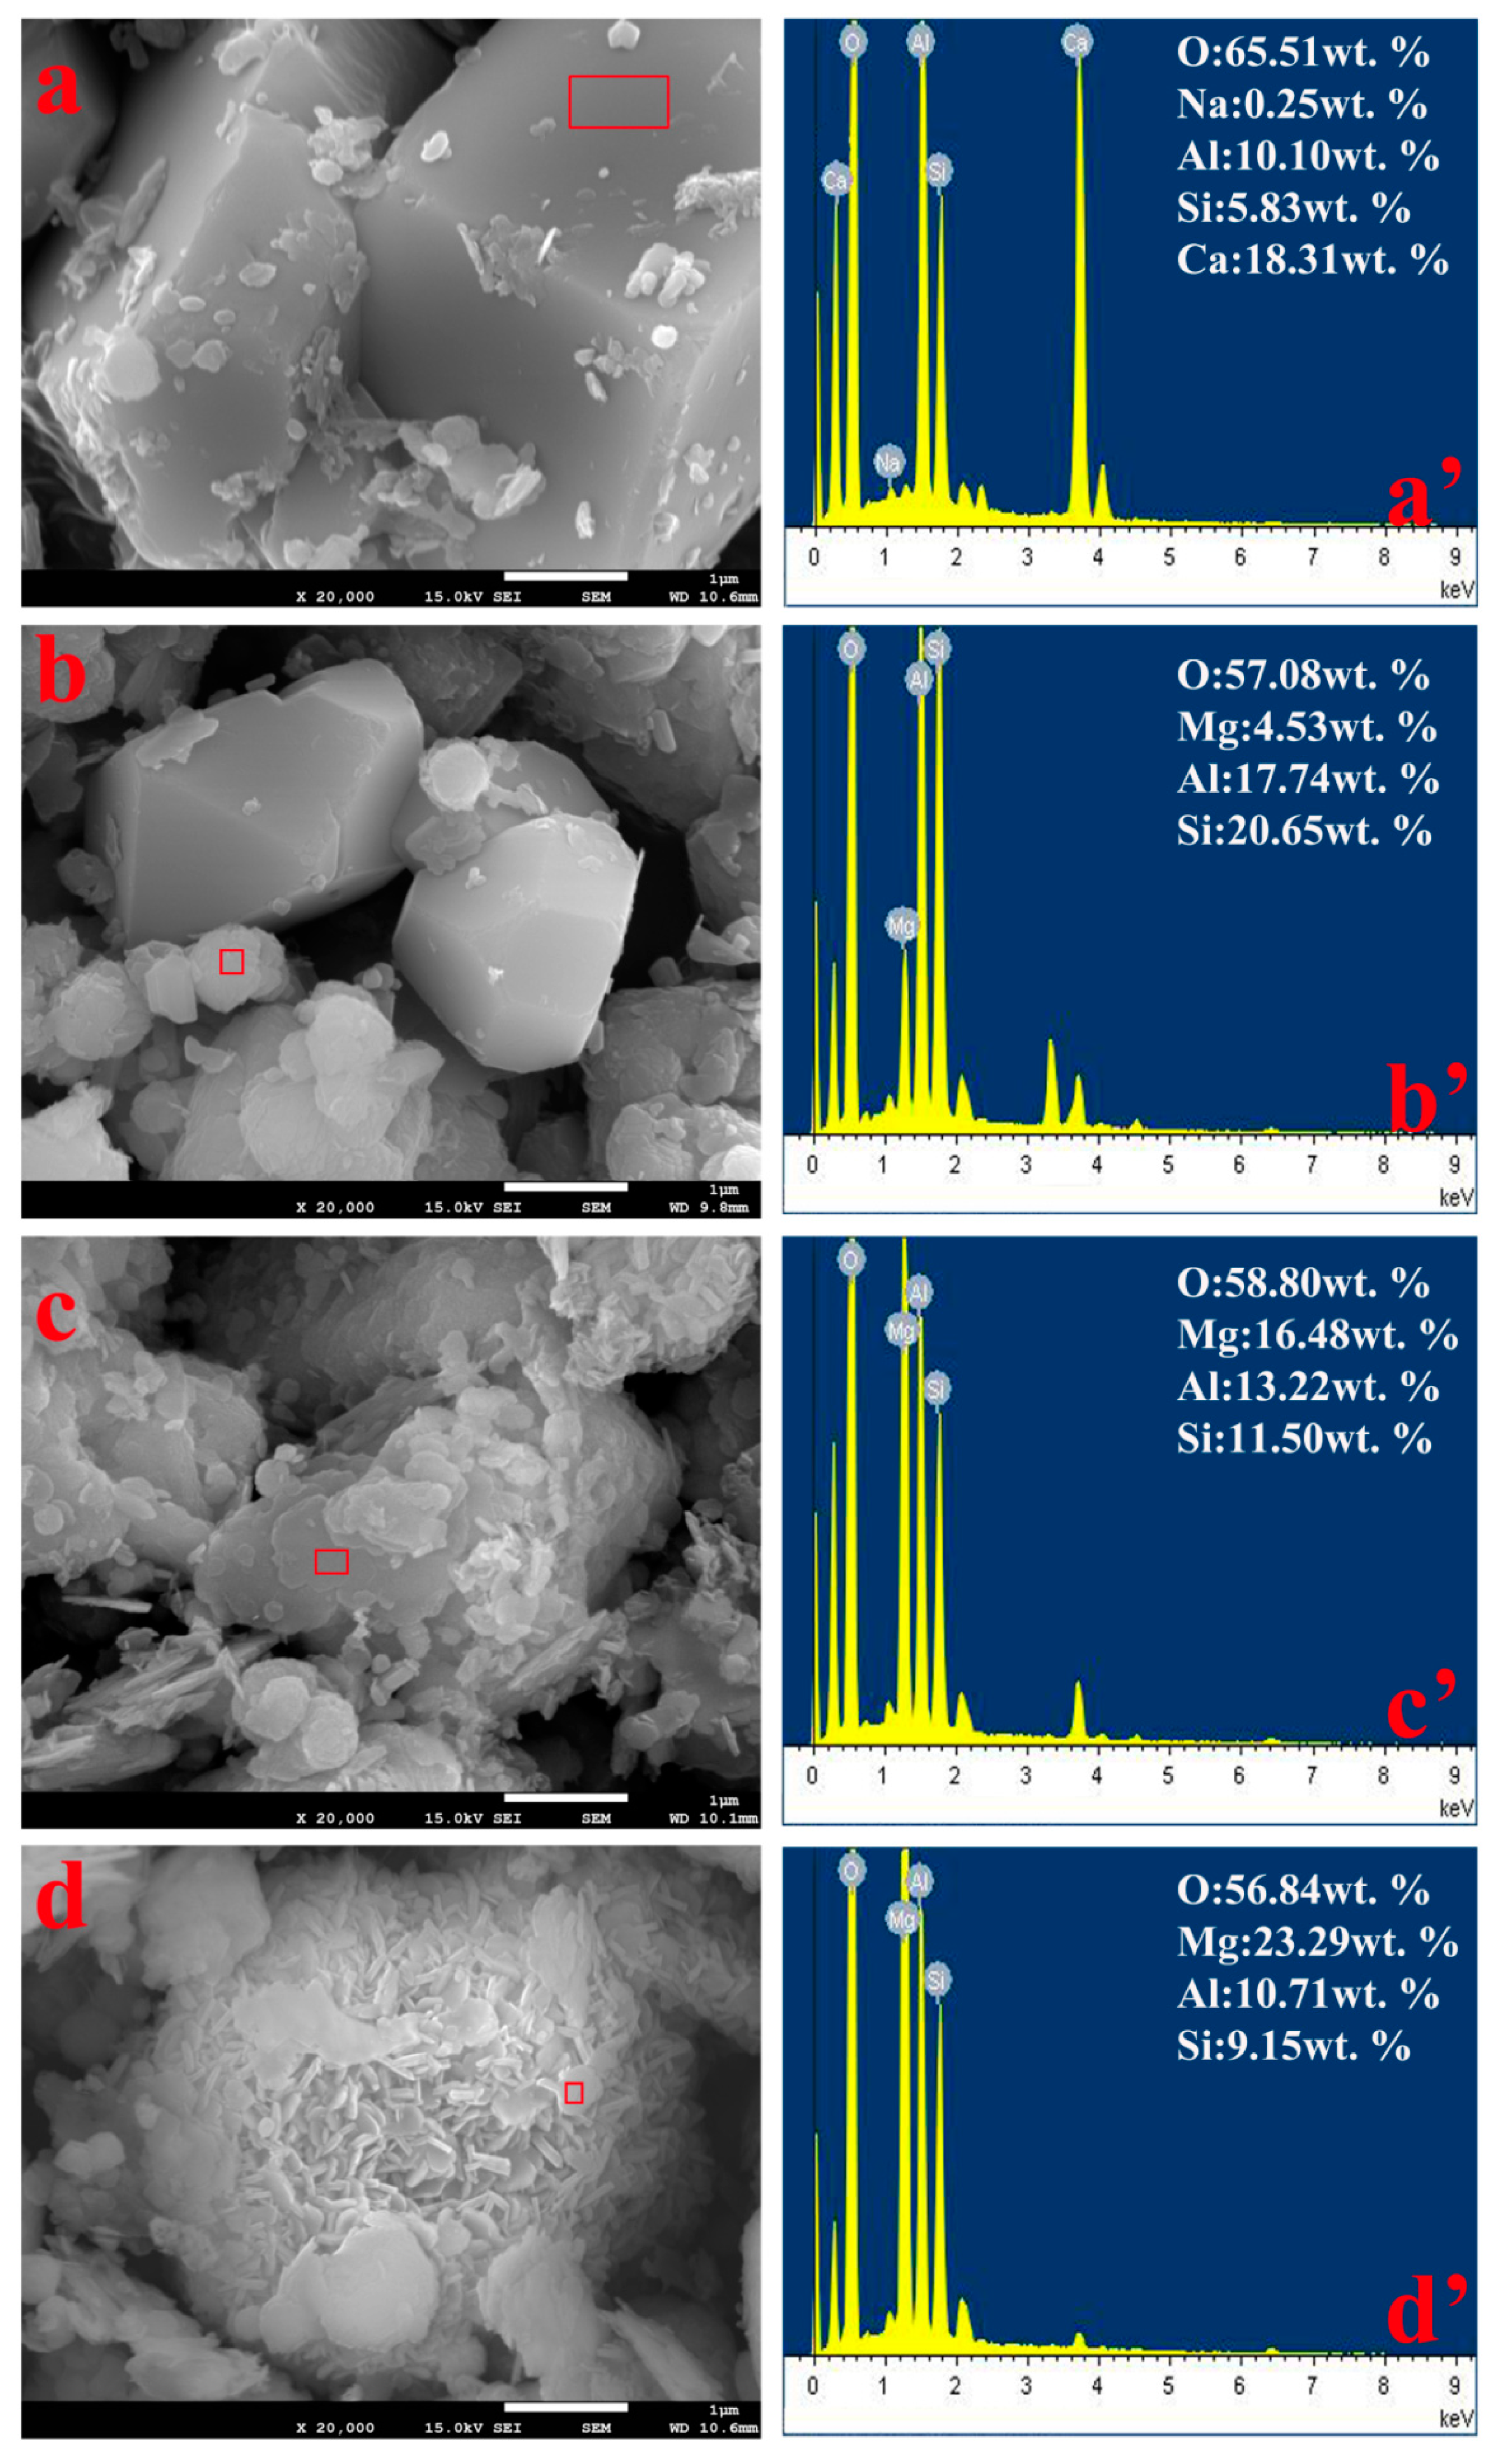 Minerals | Free Full-Text | Recovery of Alkali from Bayer Red Mud